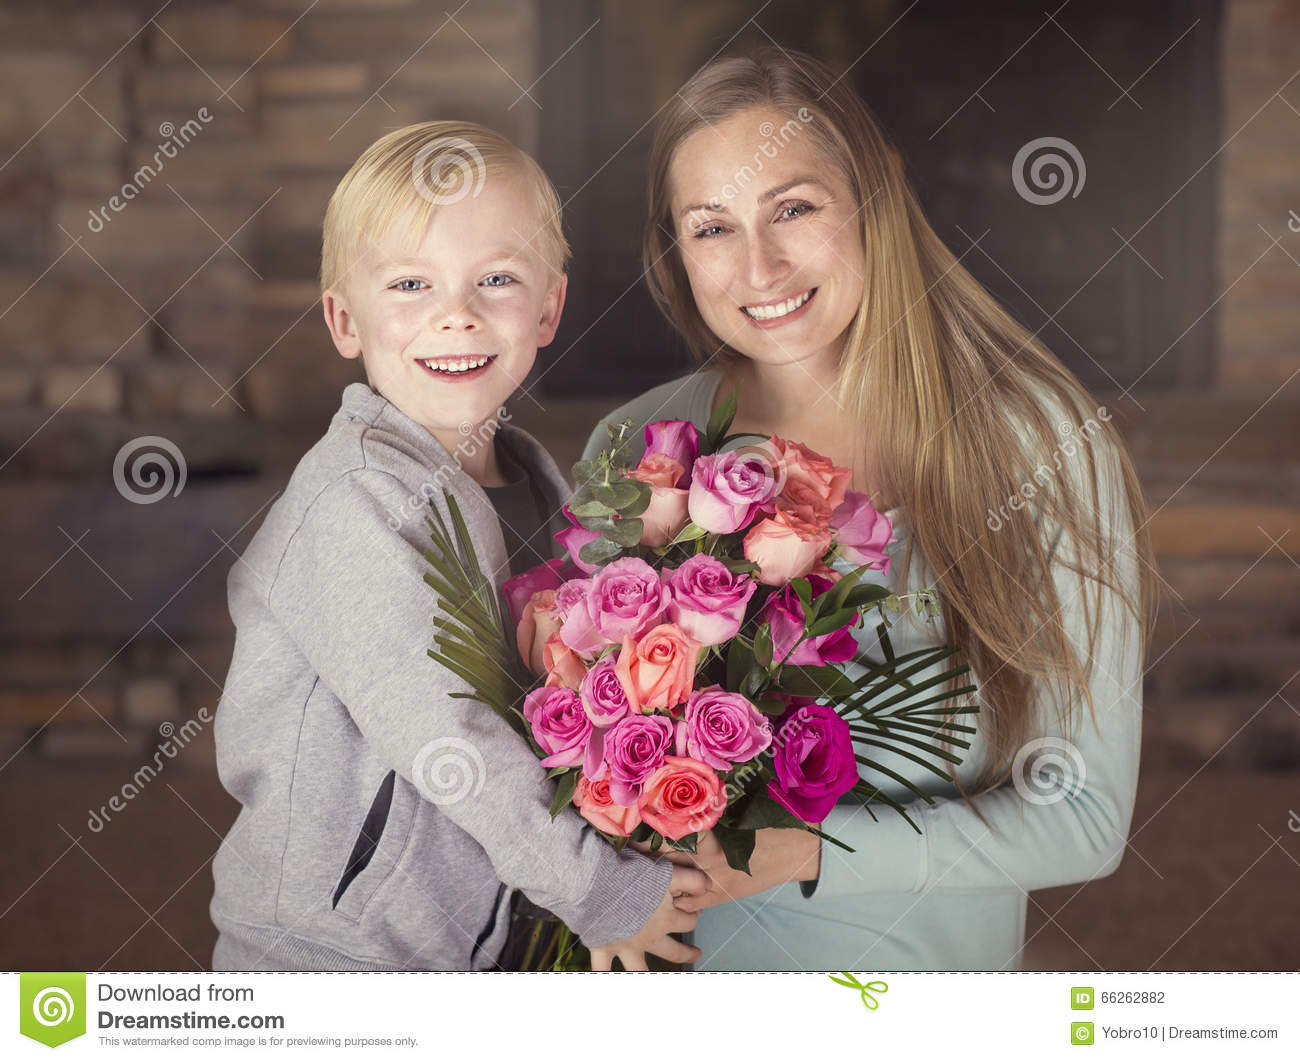 It's okay to give mother only flowers for your birthday 80